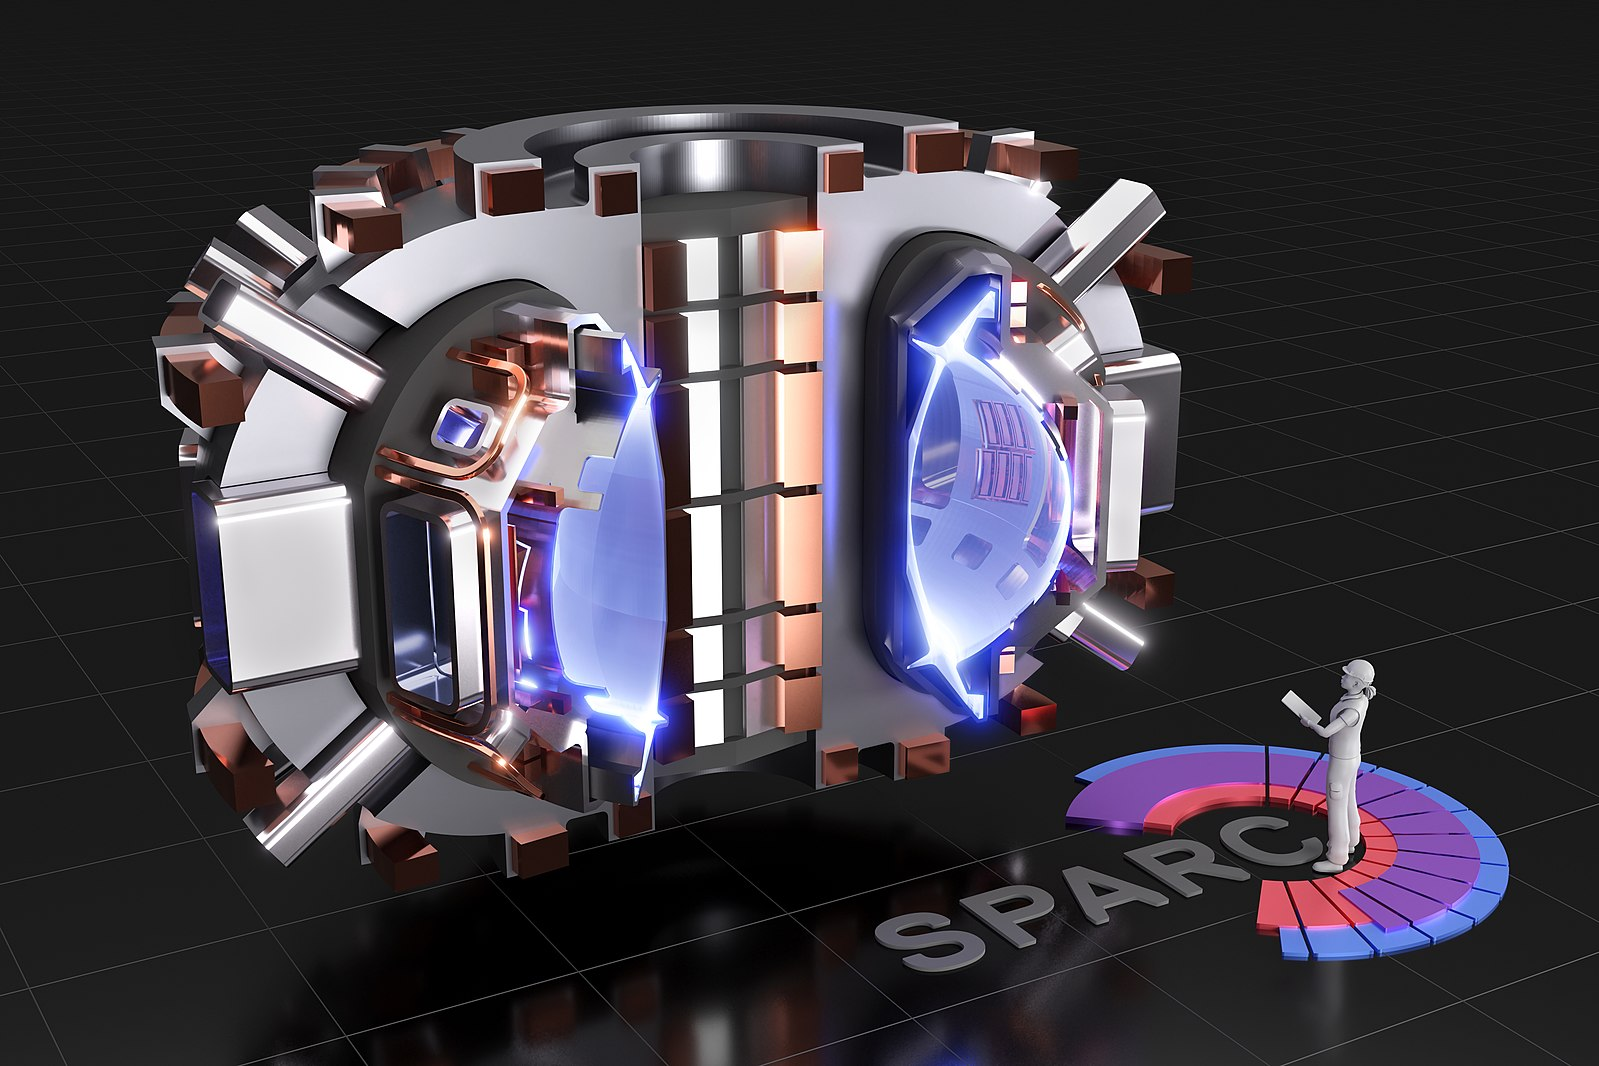 Rendering of SPARC, a compact, high-field, DT burning tokamak, currently under design by a team from the Massachusetts Institute of Technology and Commonwealth Fusion Systems. Its mission is to create and confine a plasma that produces net fusion energy.